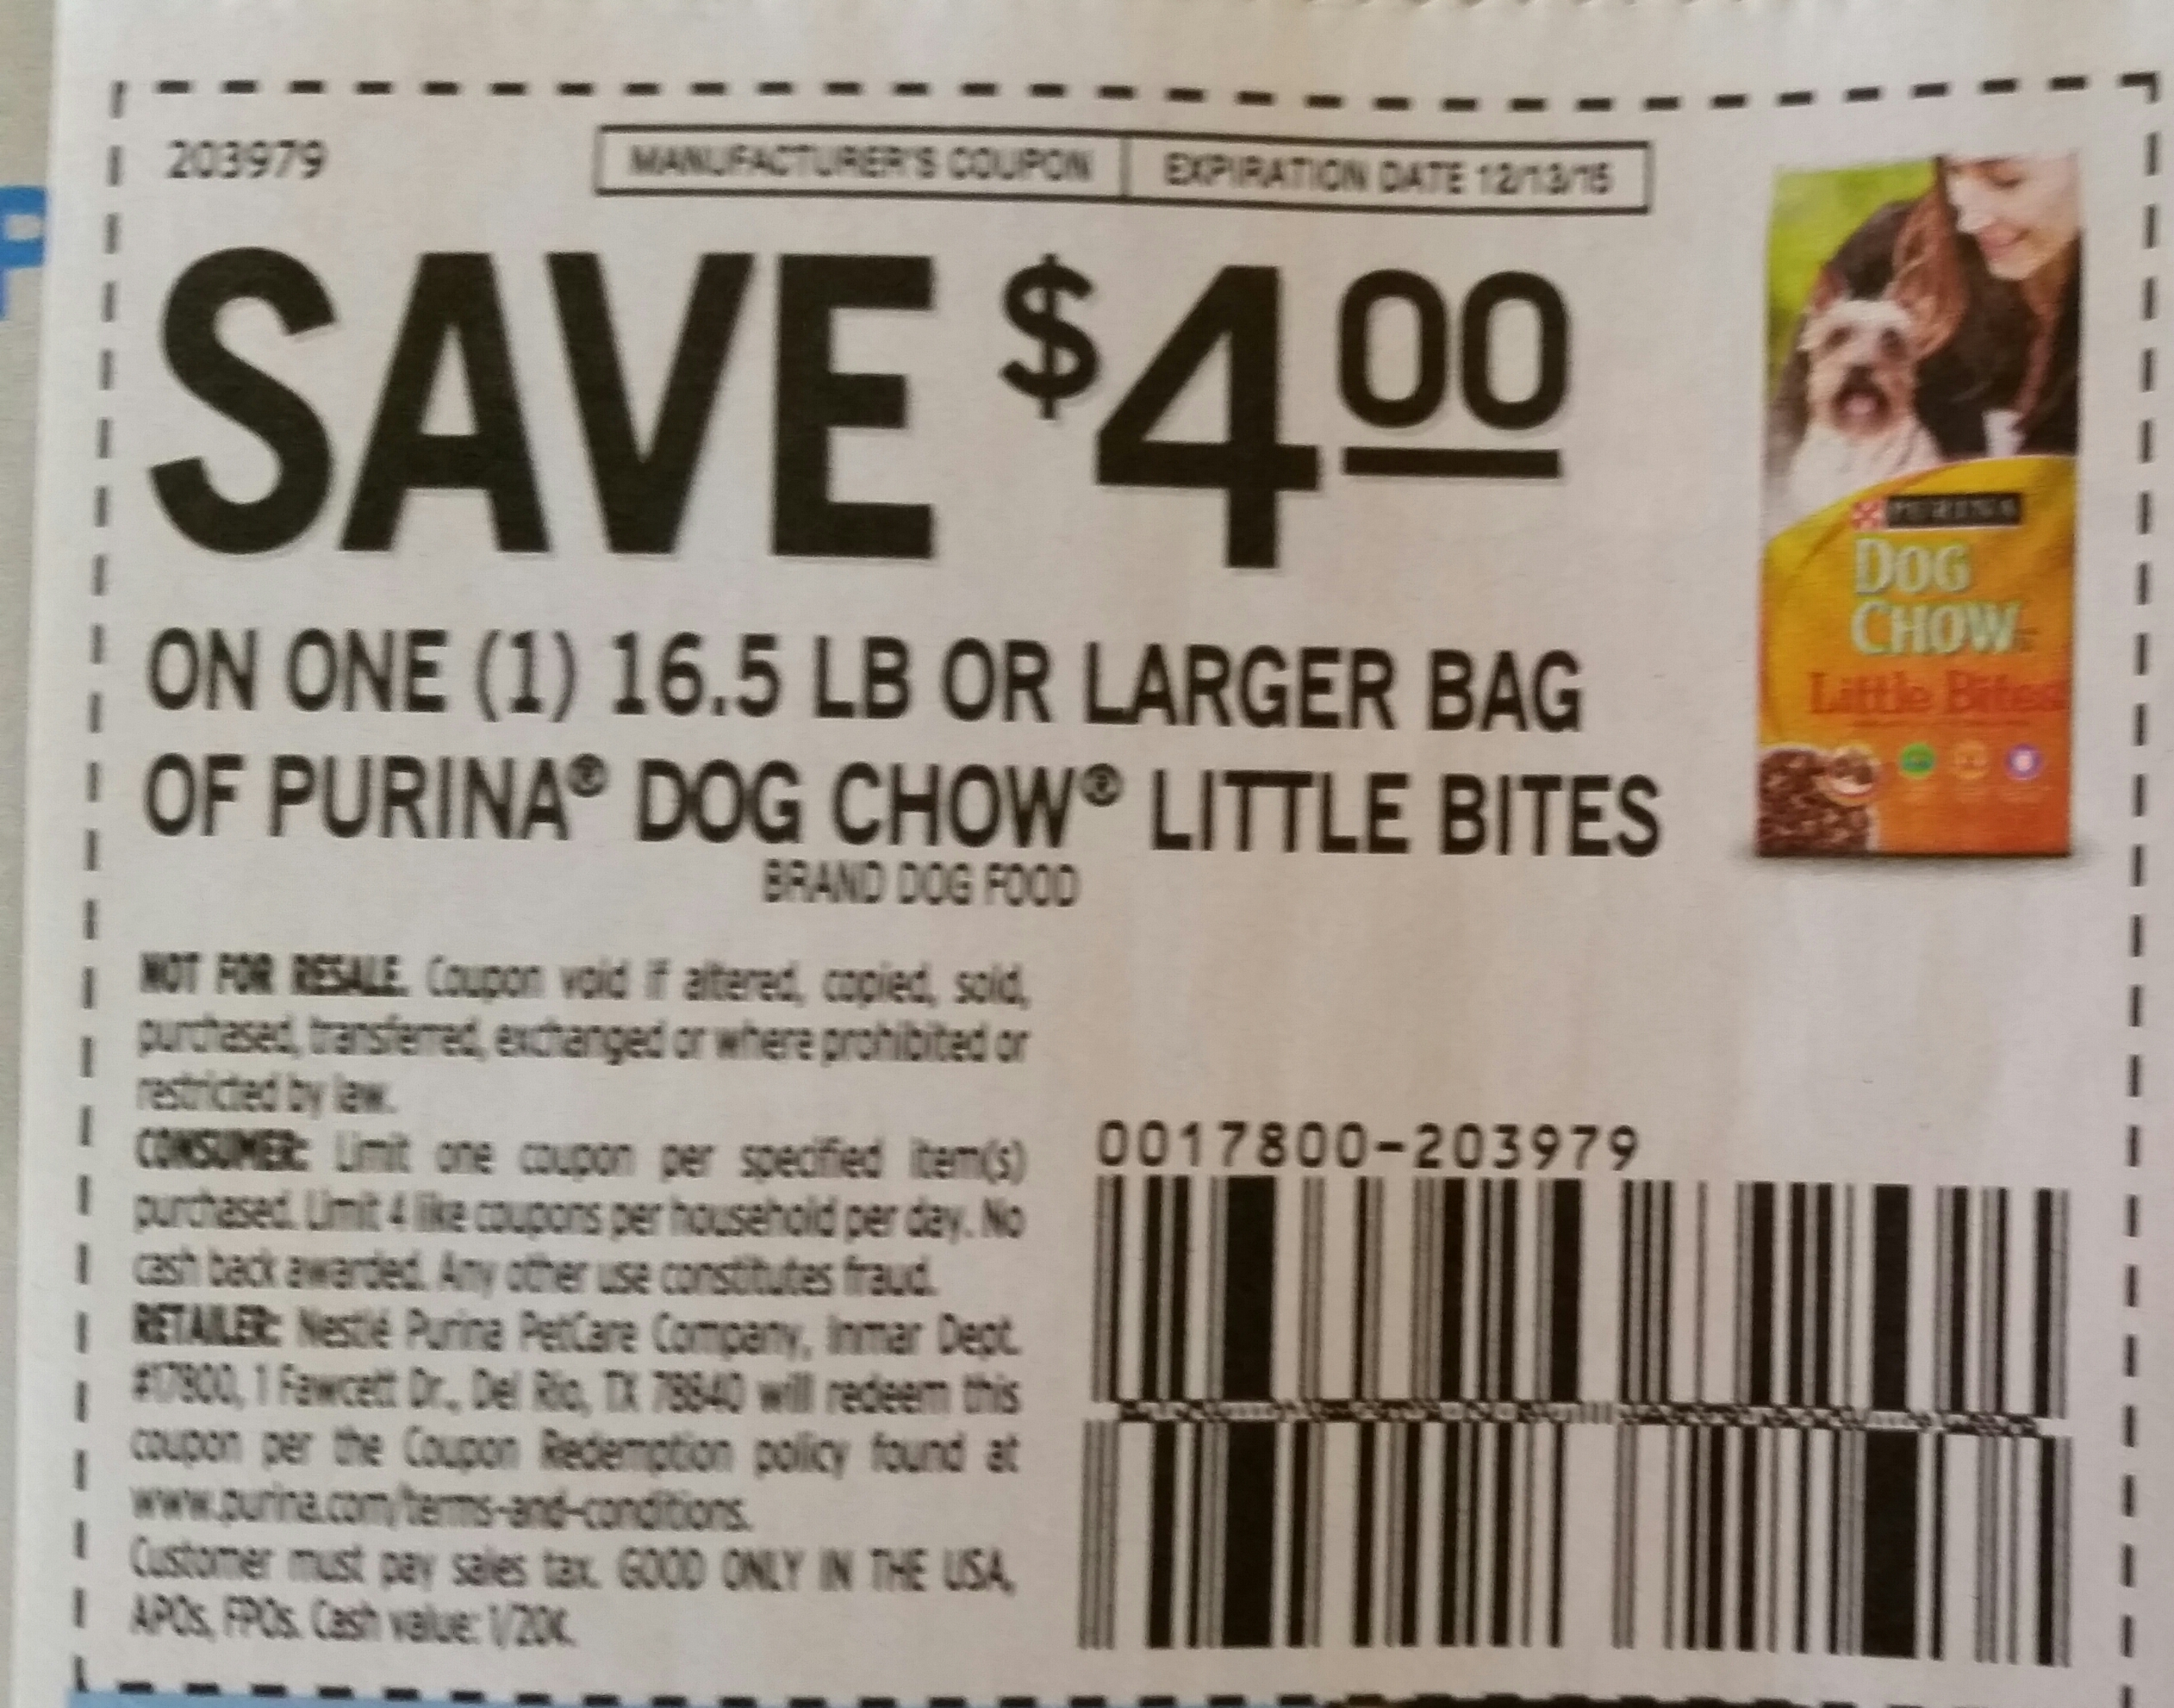 Purina dog chow coupons october 2018